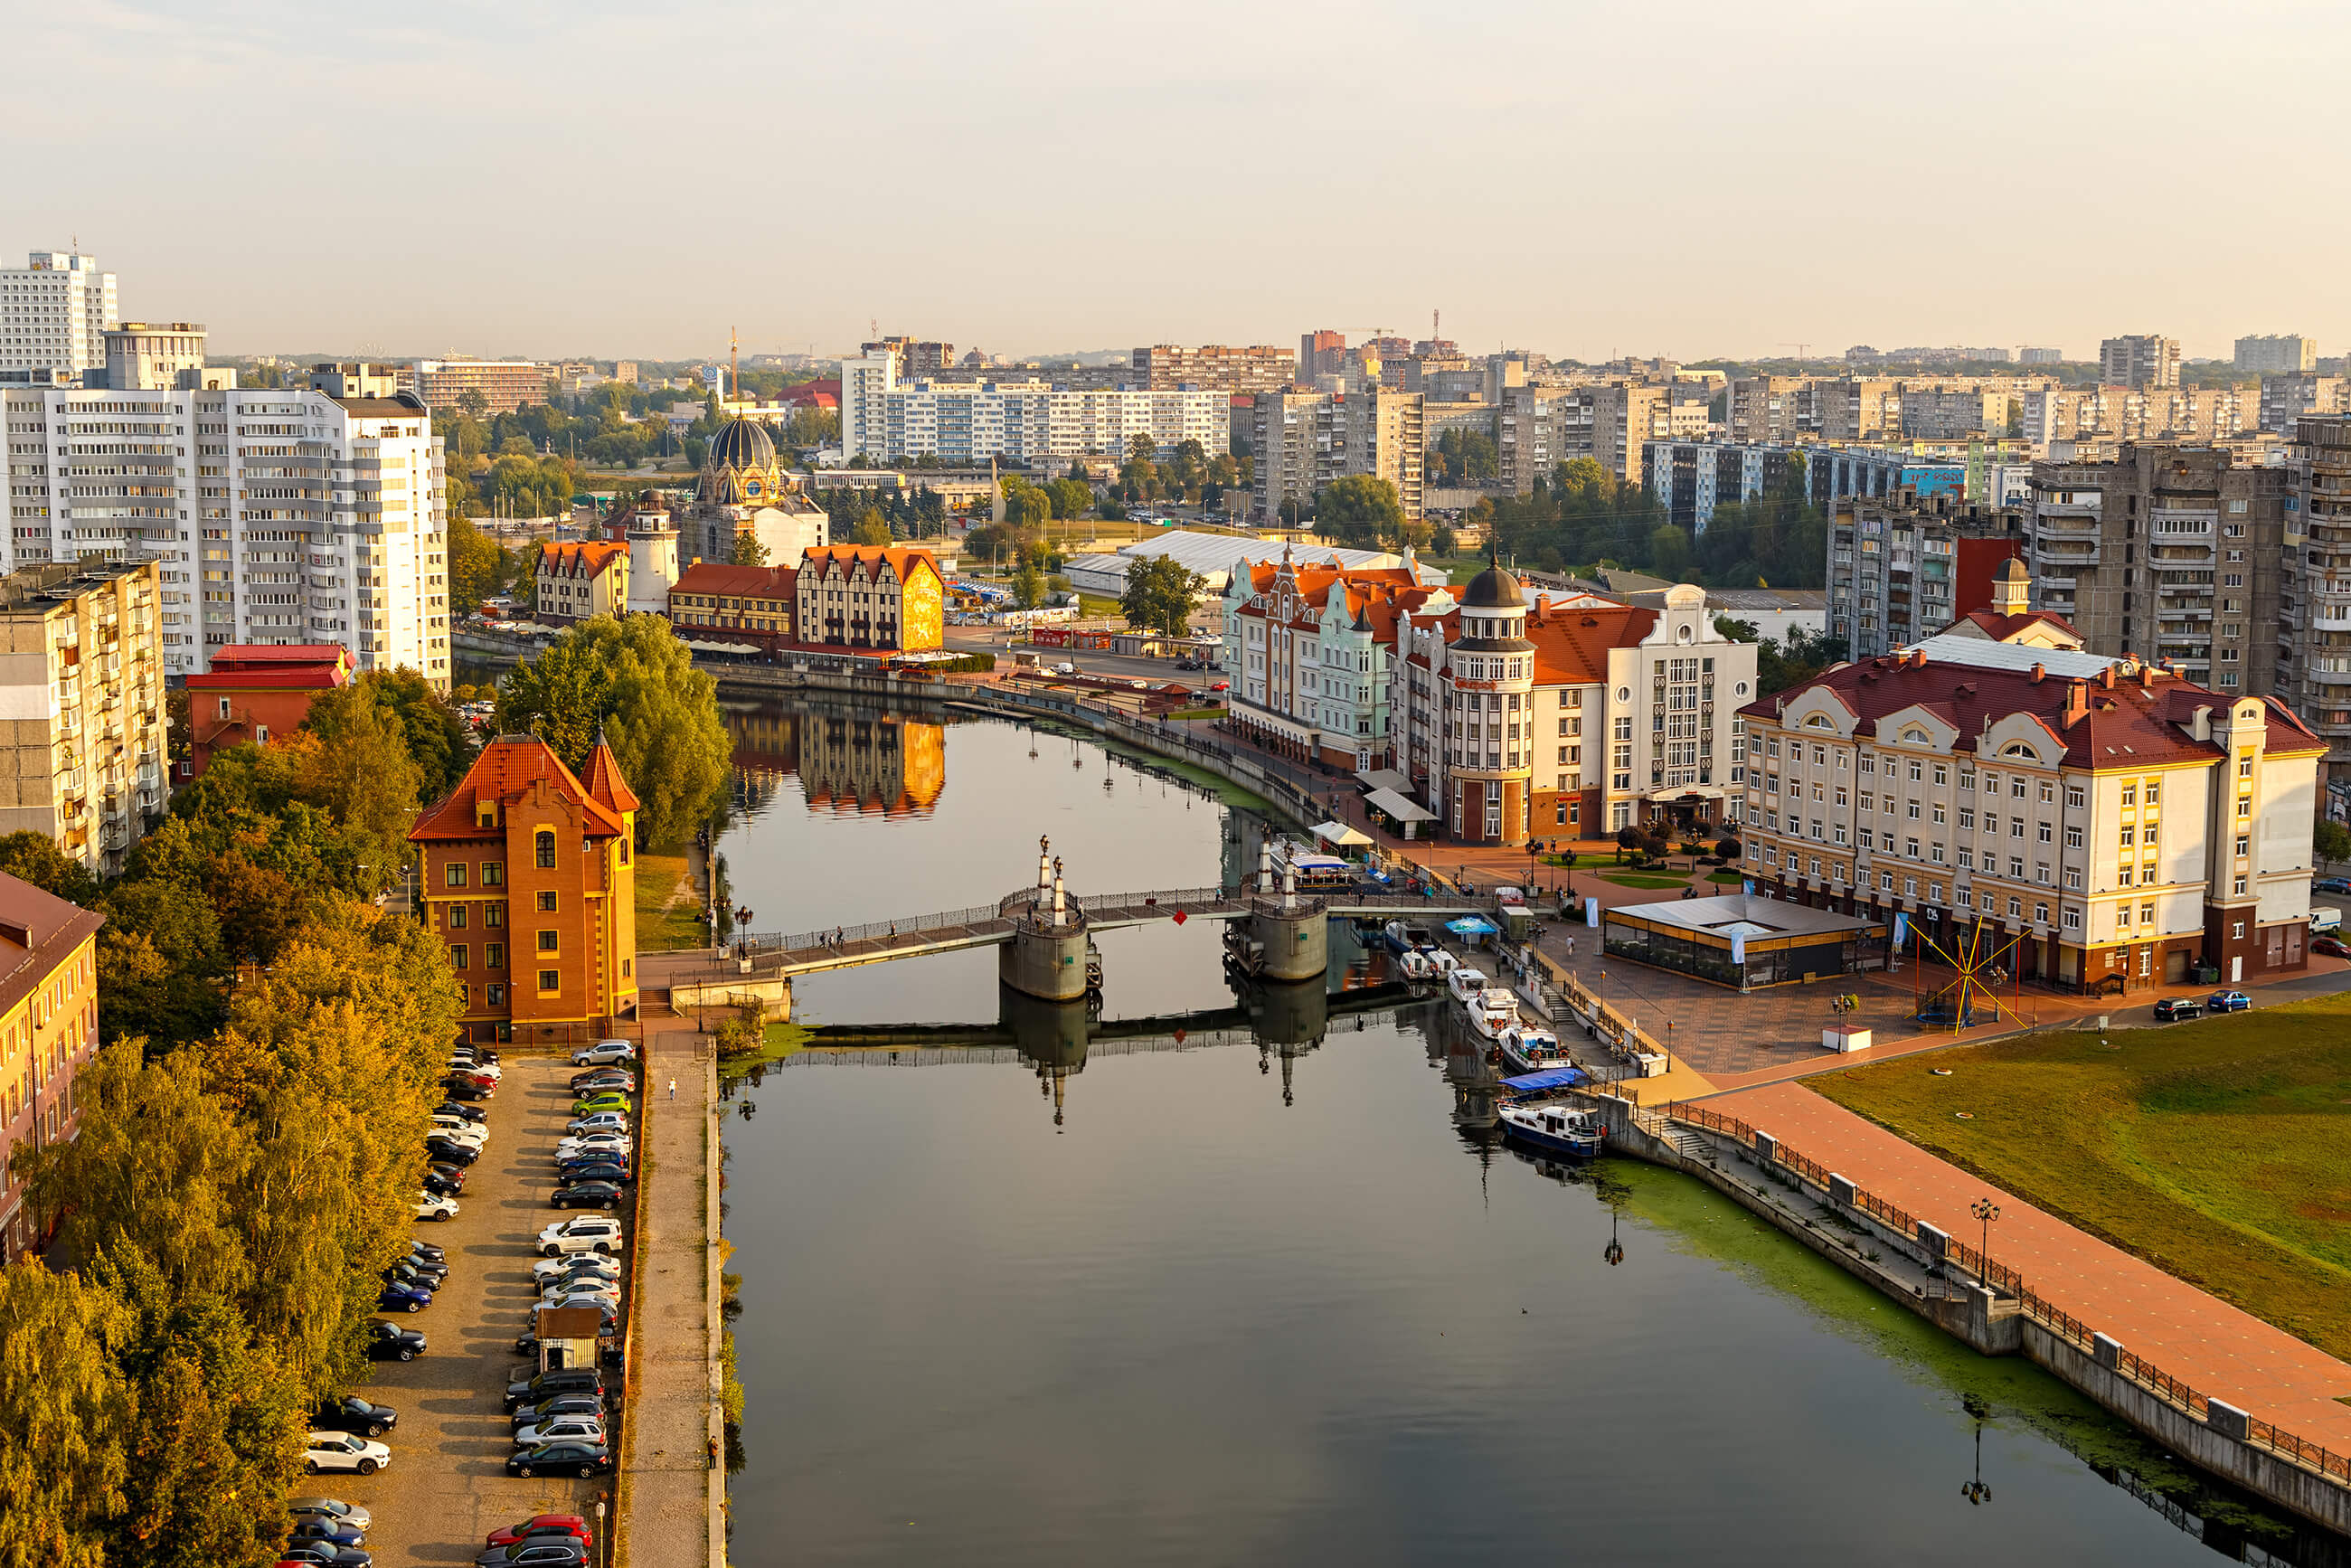 https://bubo.sk/uploads/galleries/16268/rusko_kaliningrad_shutterstock_1349767910.jpg